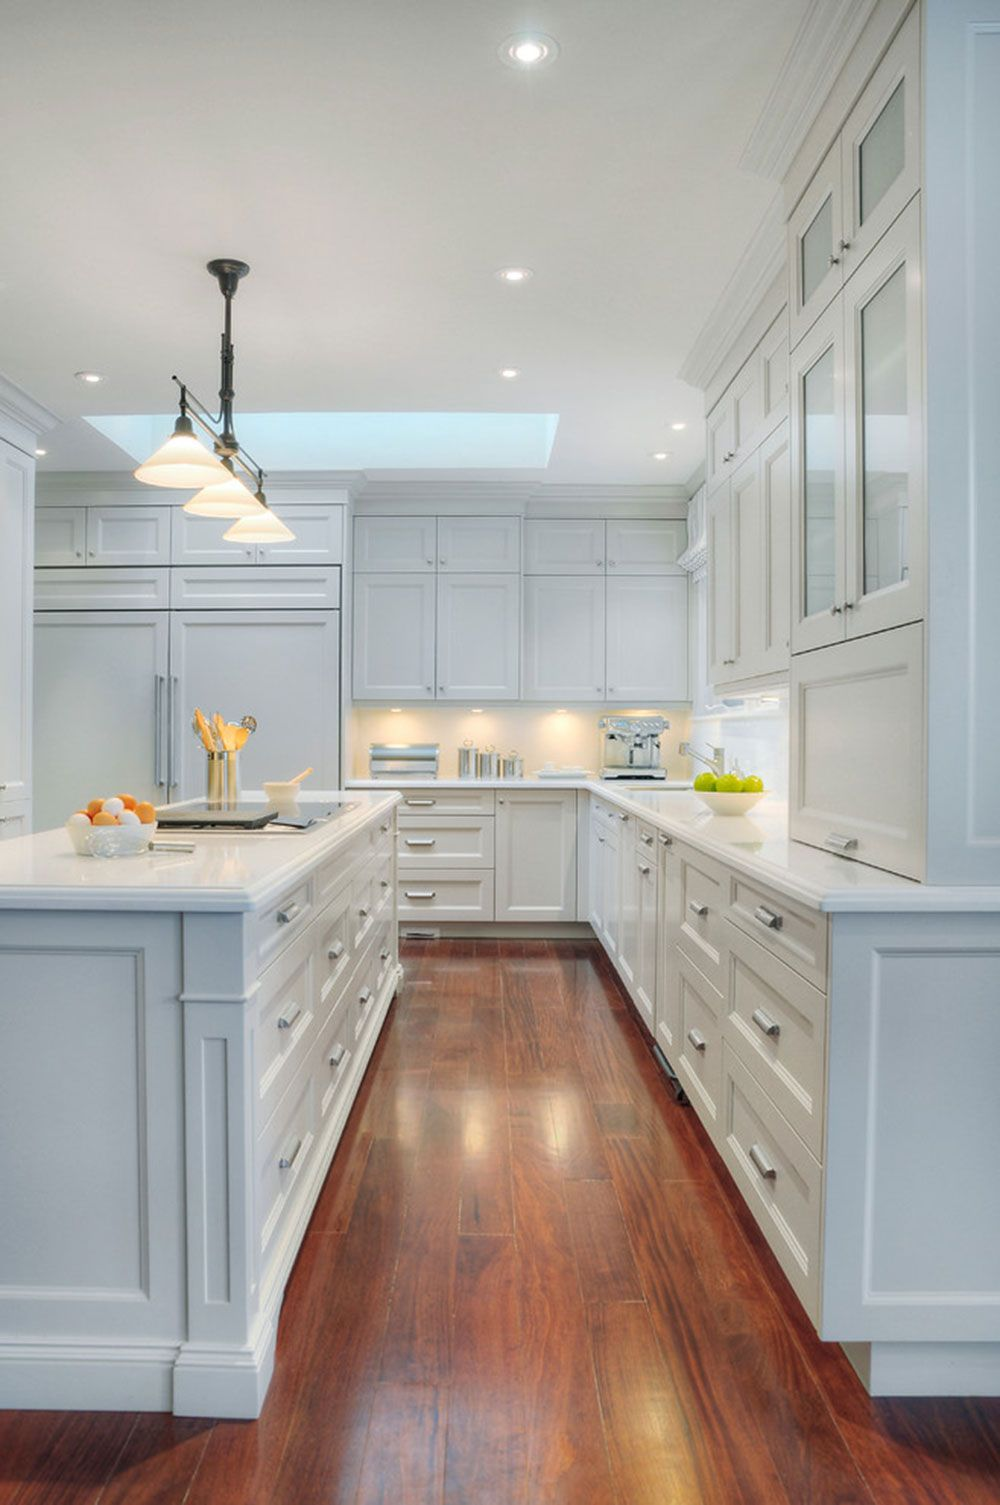 Sparkling White Quartz Countertop For Your Kitchen Design